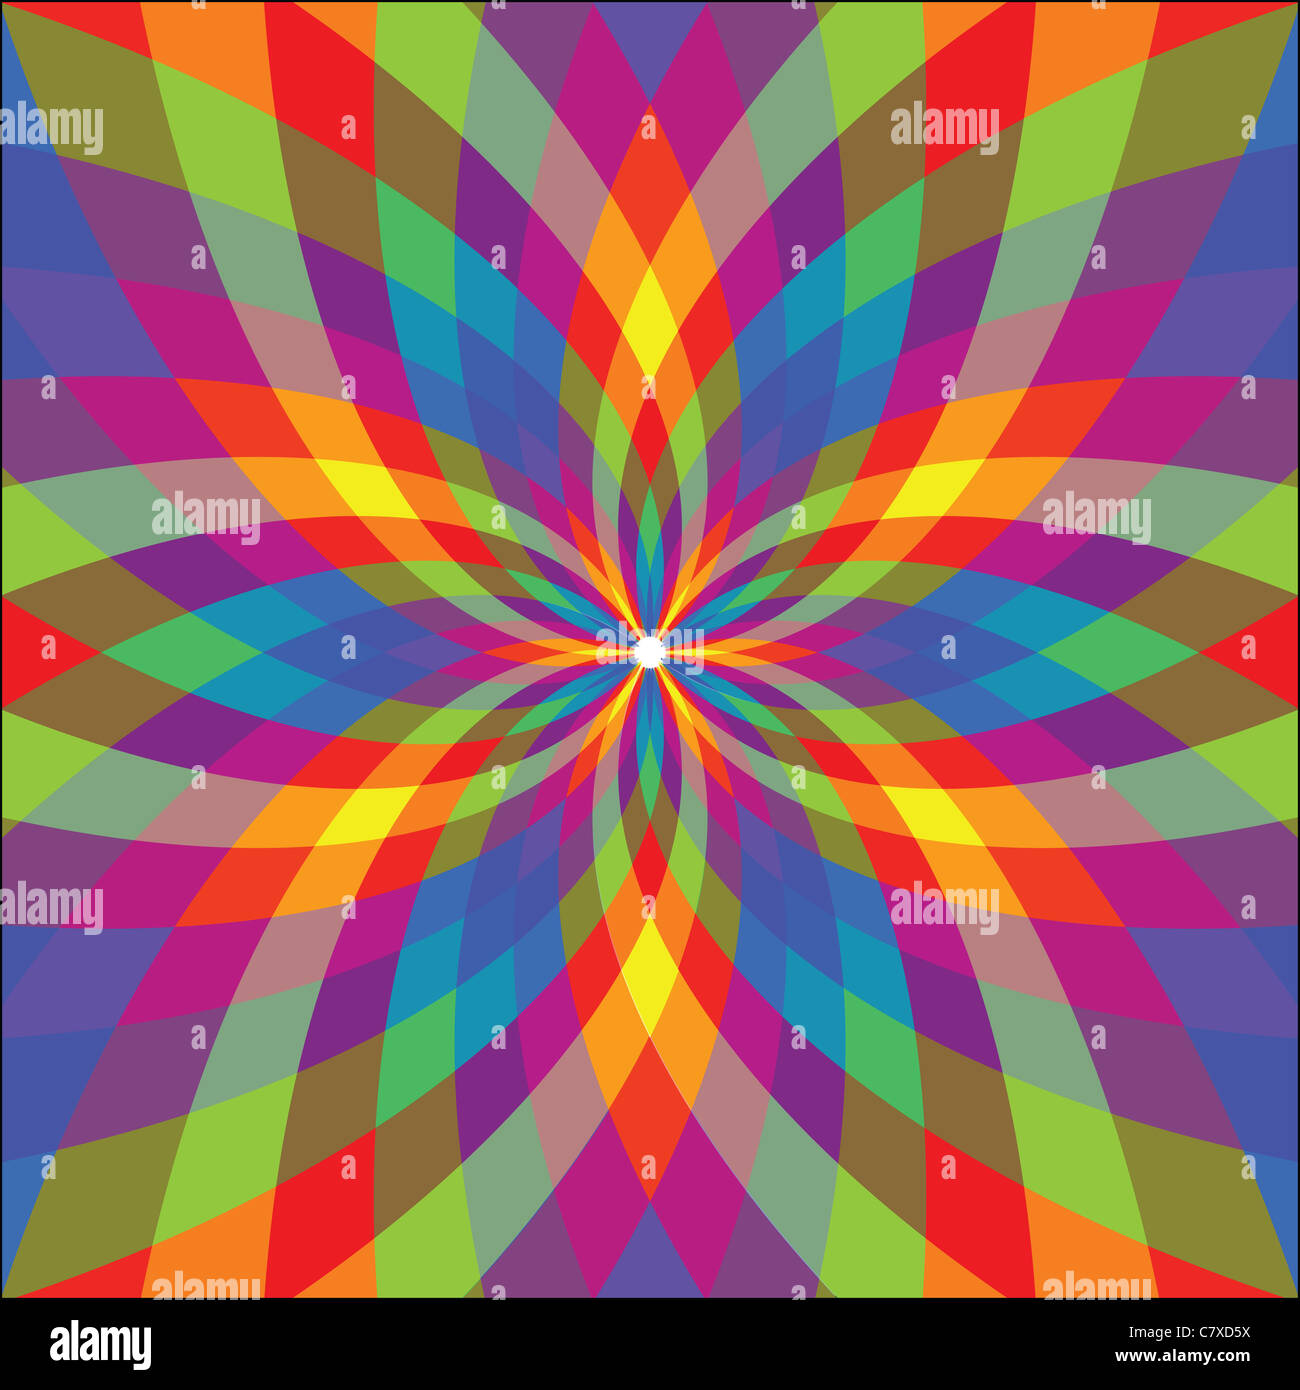 graphic flower, abstract vector art illustration - Stock Image